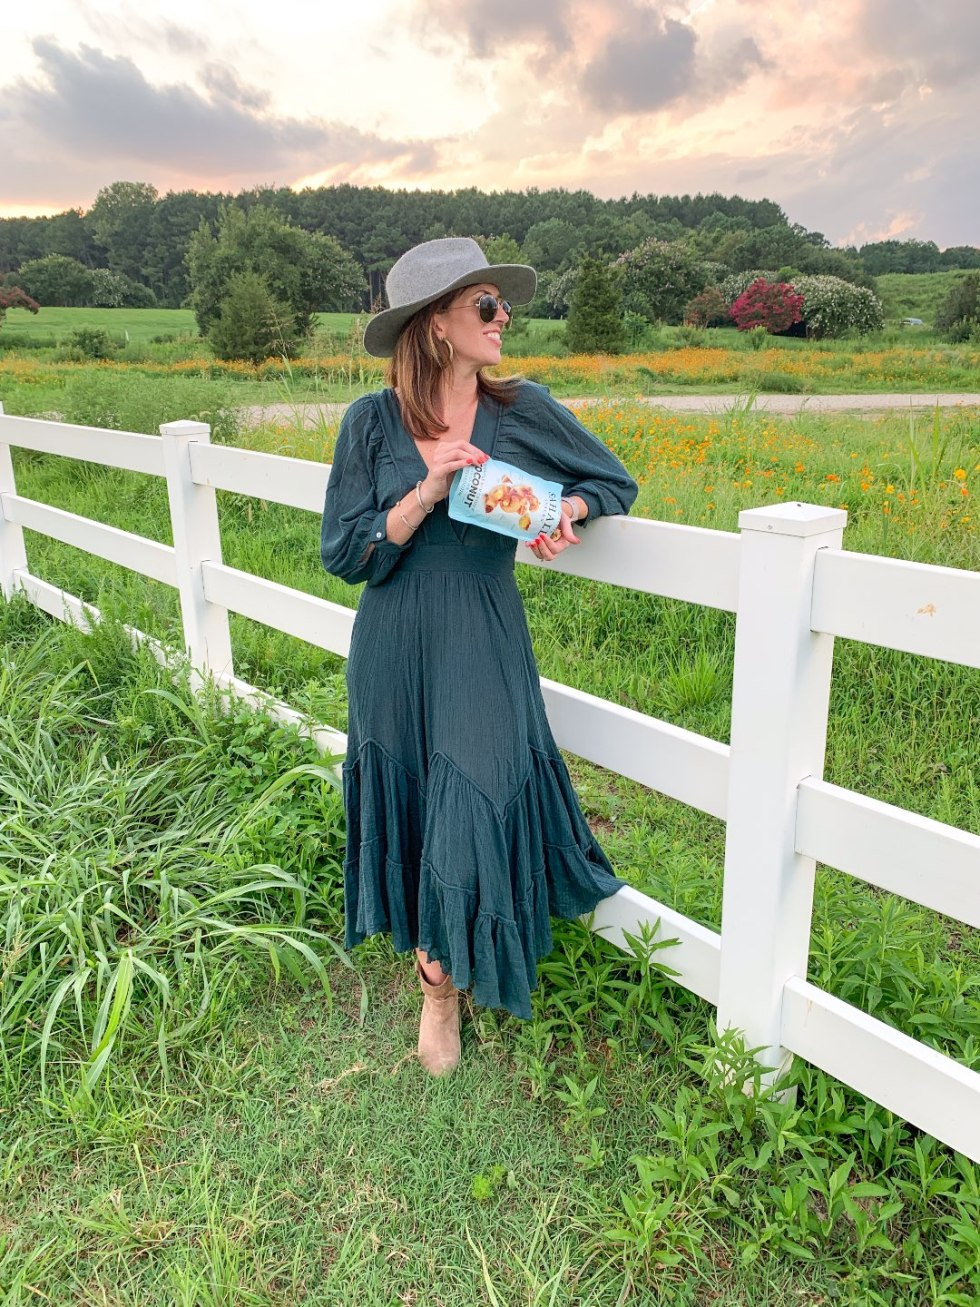 Quick Snack Ideas When You're On the Go by popular NC life and style blogger, I'm Fixin' To: image of a woman standing outside in a field and pouring a bag of Sahale Snacks coconut mix into her hands.